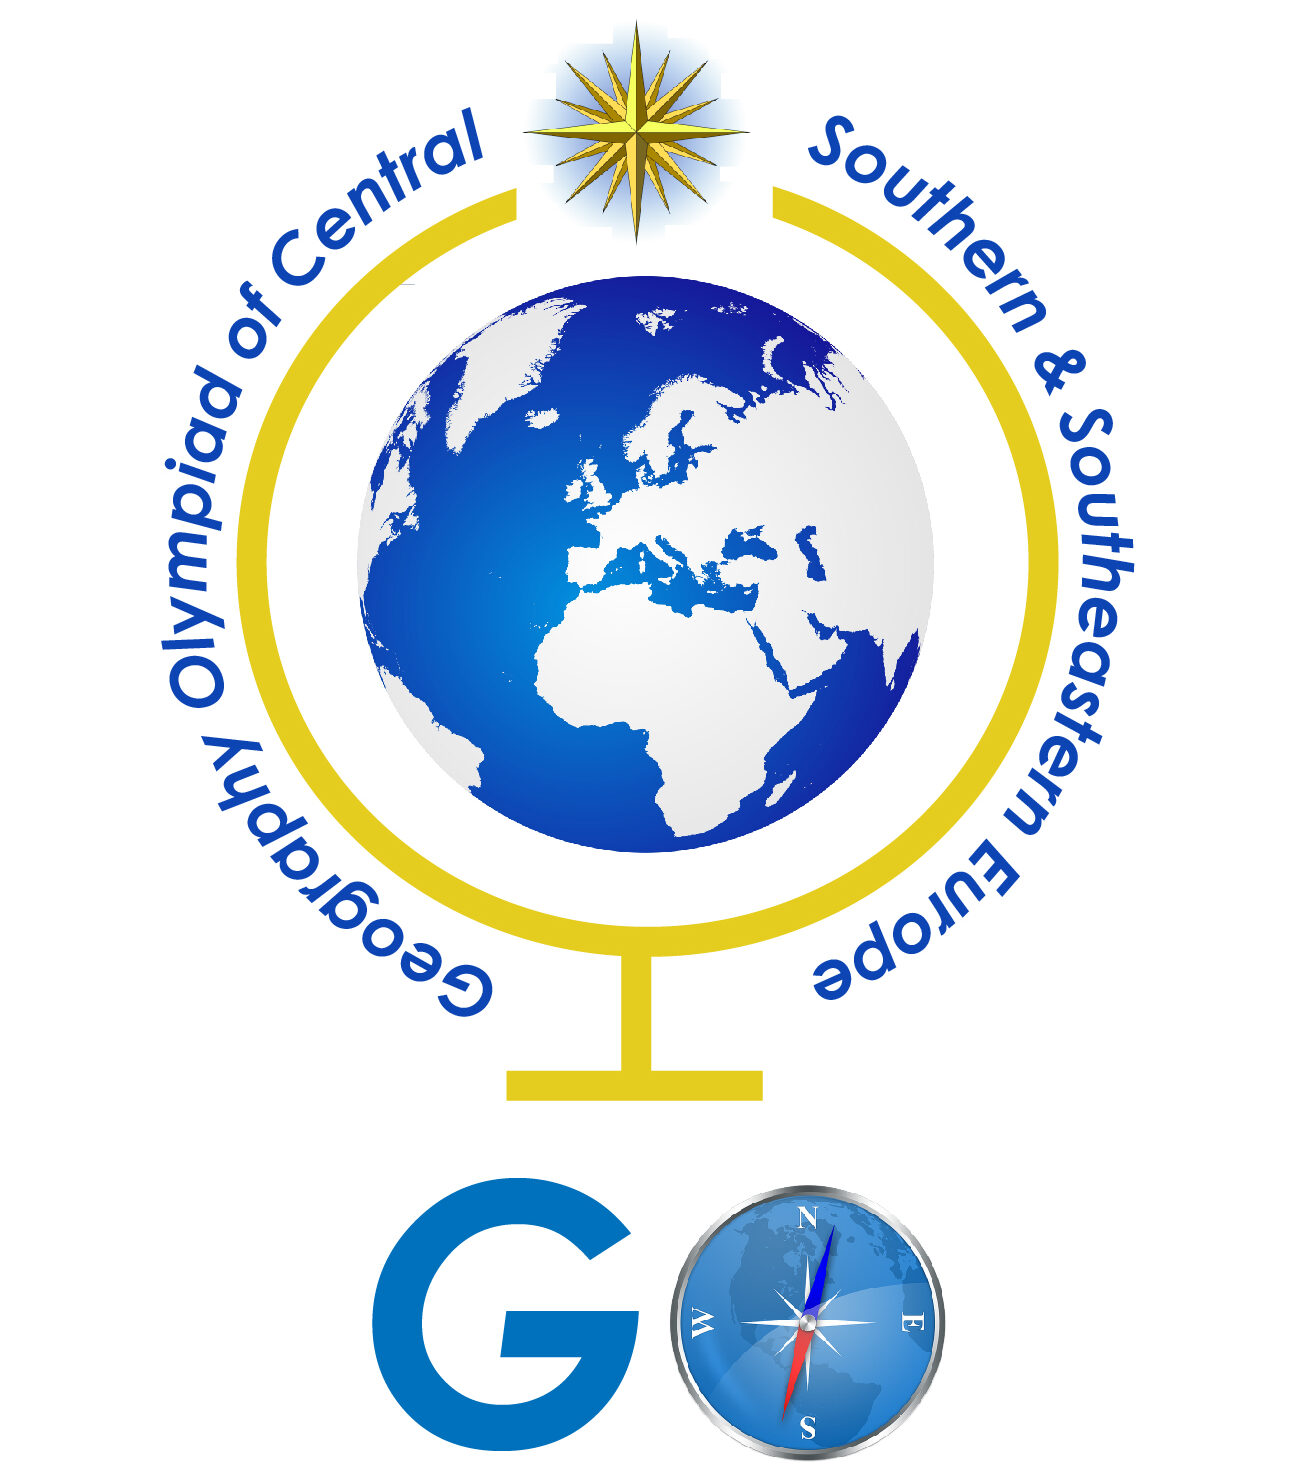 GEOGRAPHY OLYMPIAD  OF CENTRAL, SOUTH AND SOUTH EASTERN EUROPE